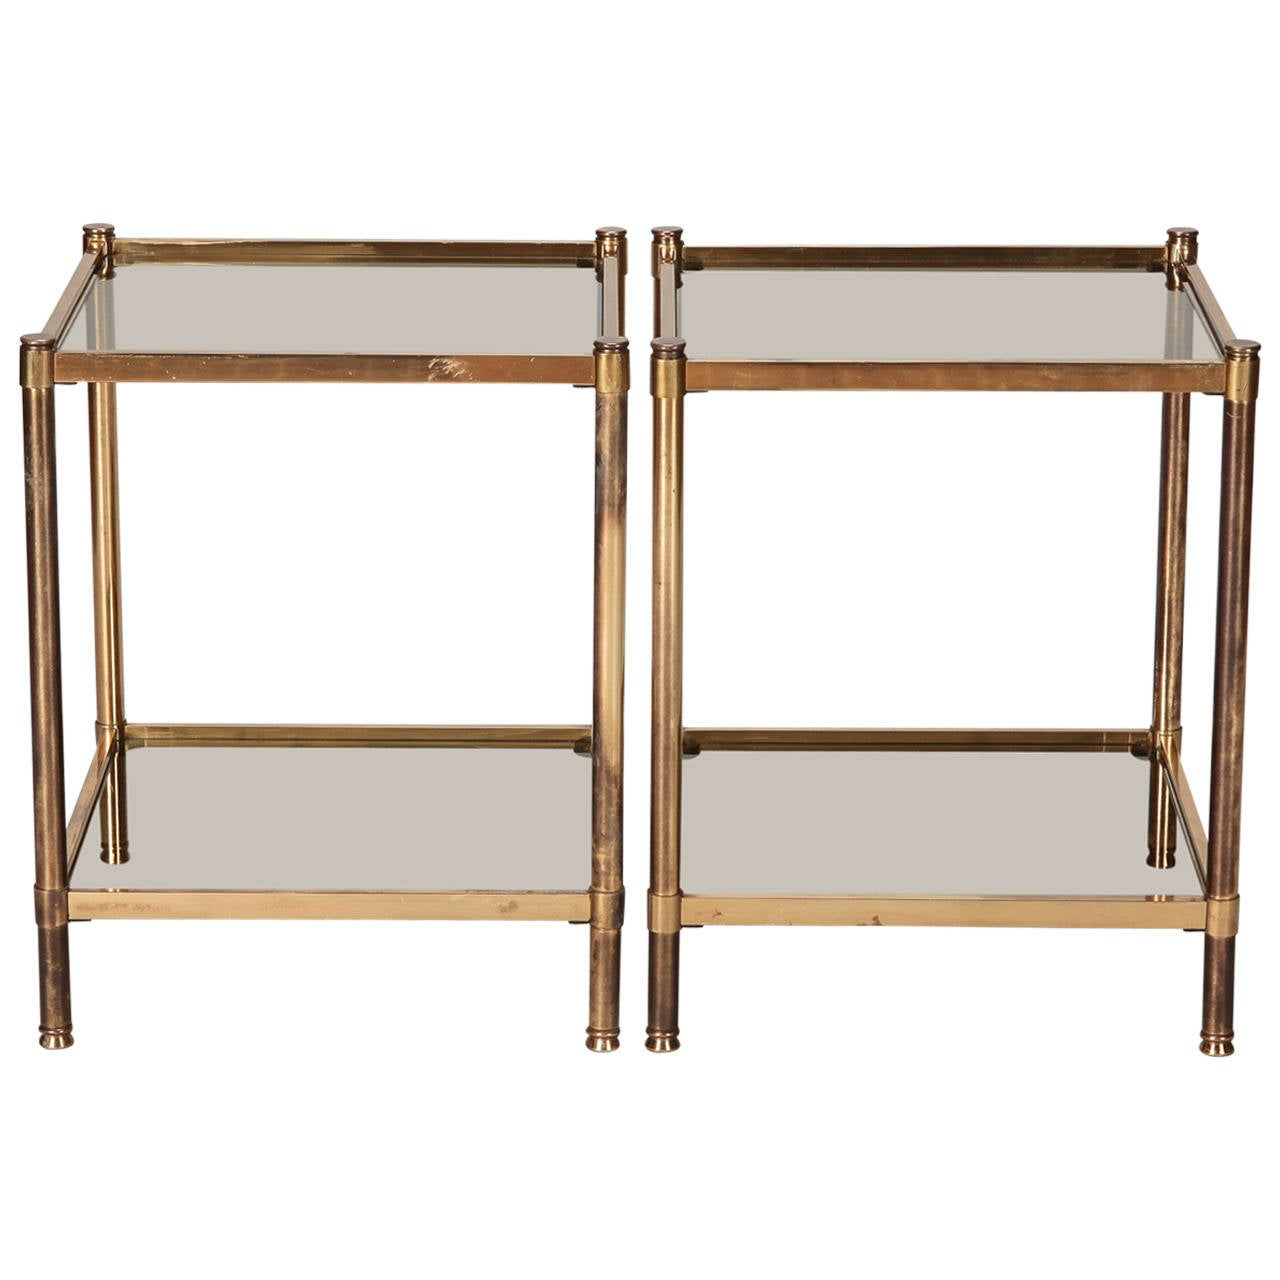 Pair of Italian Mid Century Brass and Glass Square Tables